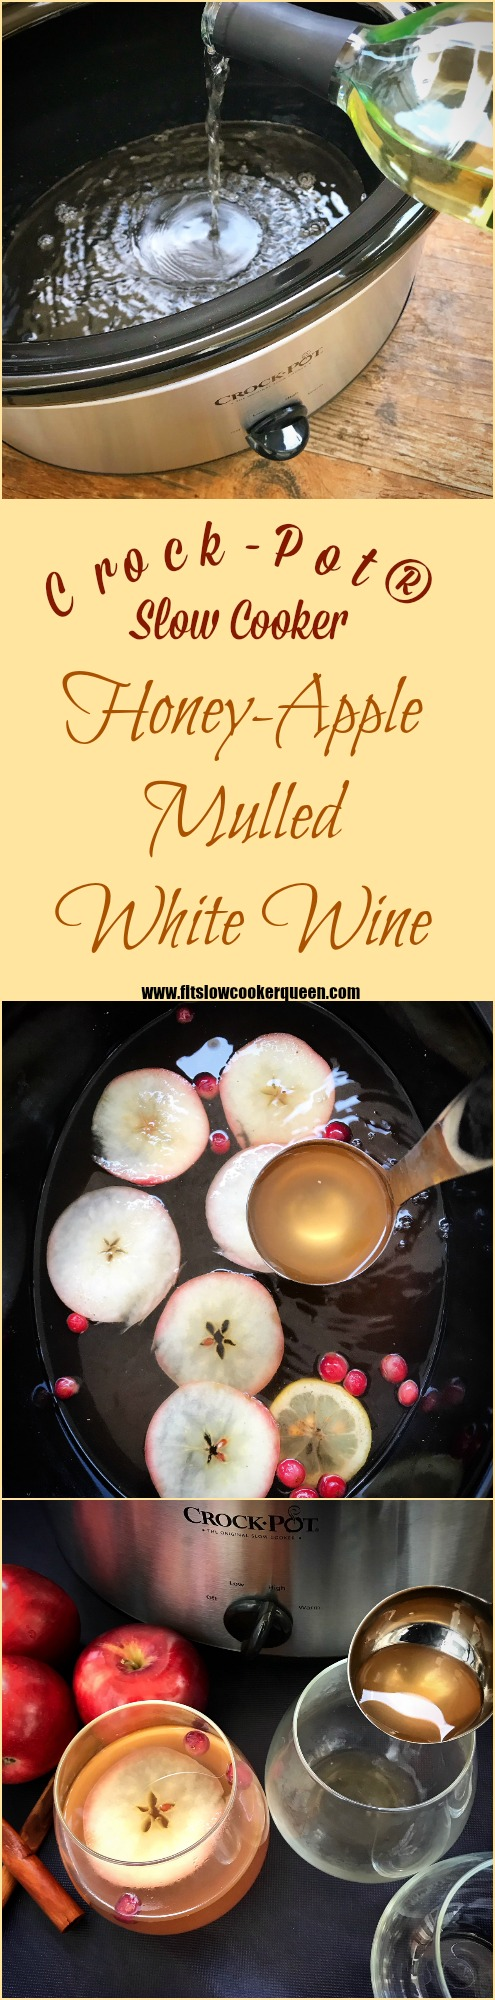 Crock-pots can be used to make so many recipes like this homemade mulled white wine. It's super easy and perfect for entertaining or an evening at home.